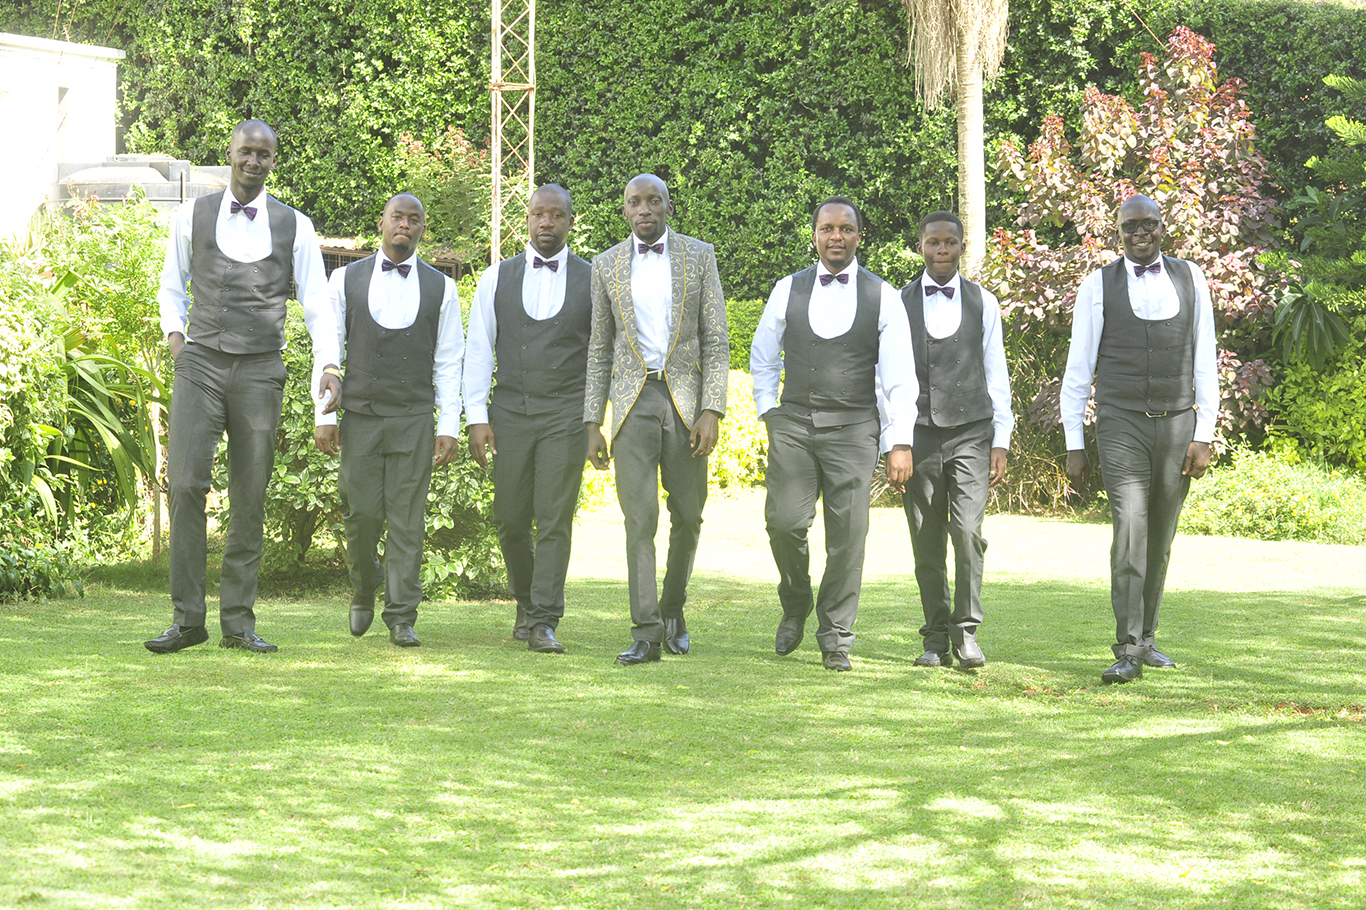 Groom blazer for wedding in Kenya